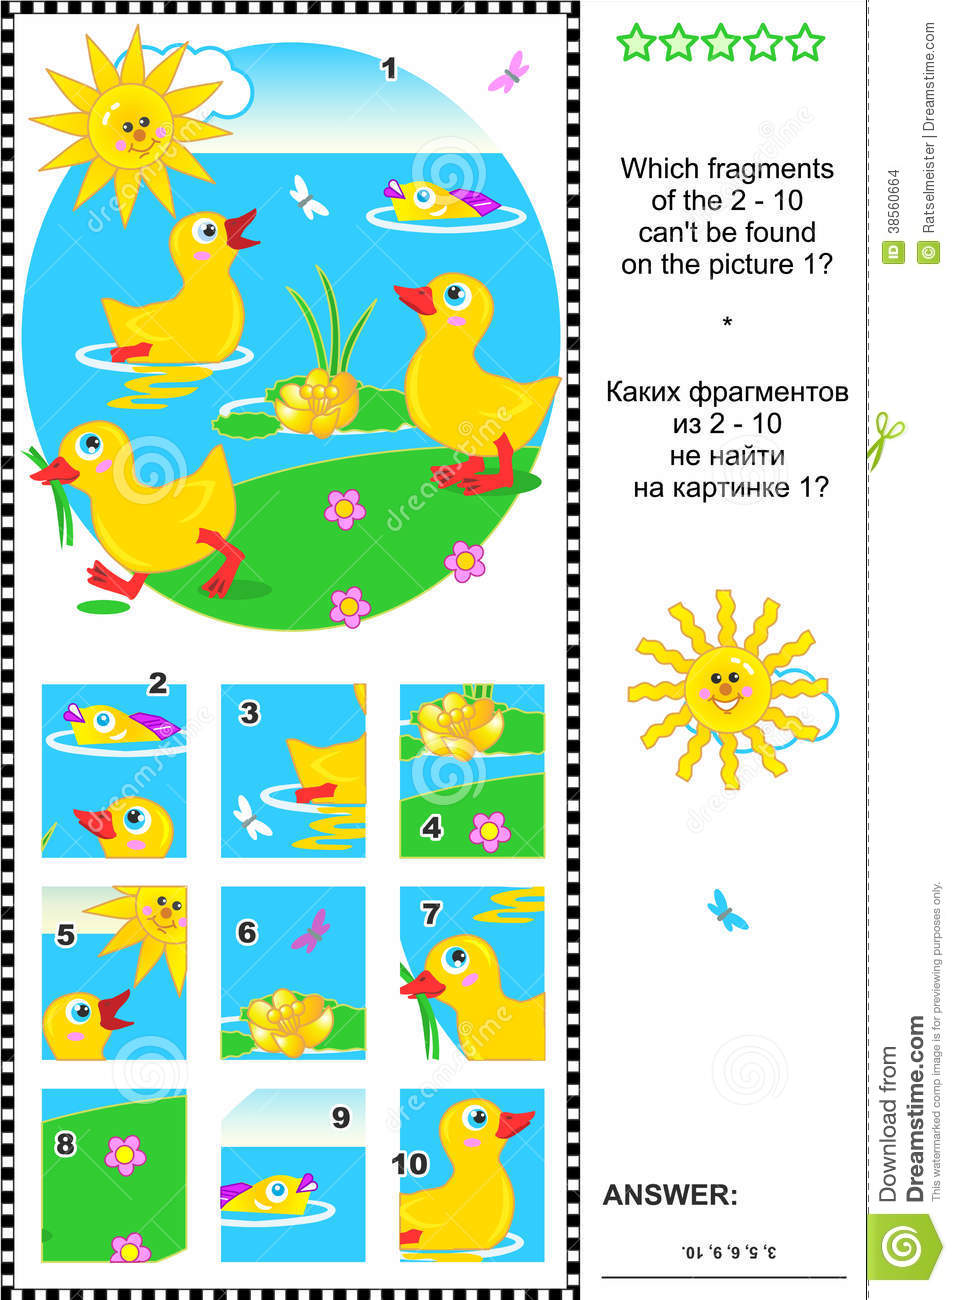 united states map puzzle for kids with Stock Images Cute Little Ducklings Visual Logic Puzzle What Not Fragments Picture Plus Same Task Text Russian Answer Image38560664 on Stock Illustration Rooster Animal Cartoon Illustration Children Colorful Vector Image60975657 also Stock Illustration Put All Together Puzzle Pieces Solve Mystery Problem Solving Seeing Full Total Picture Image56609285 also Printable Word Search Puzzles likewise B000GKAU1I additionally 2.